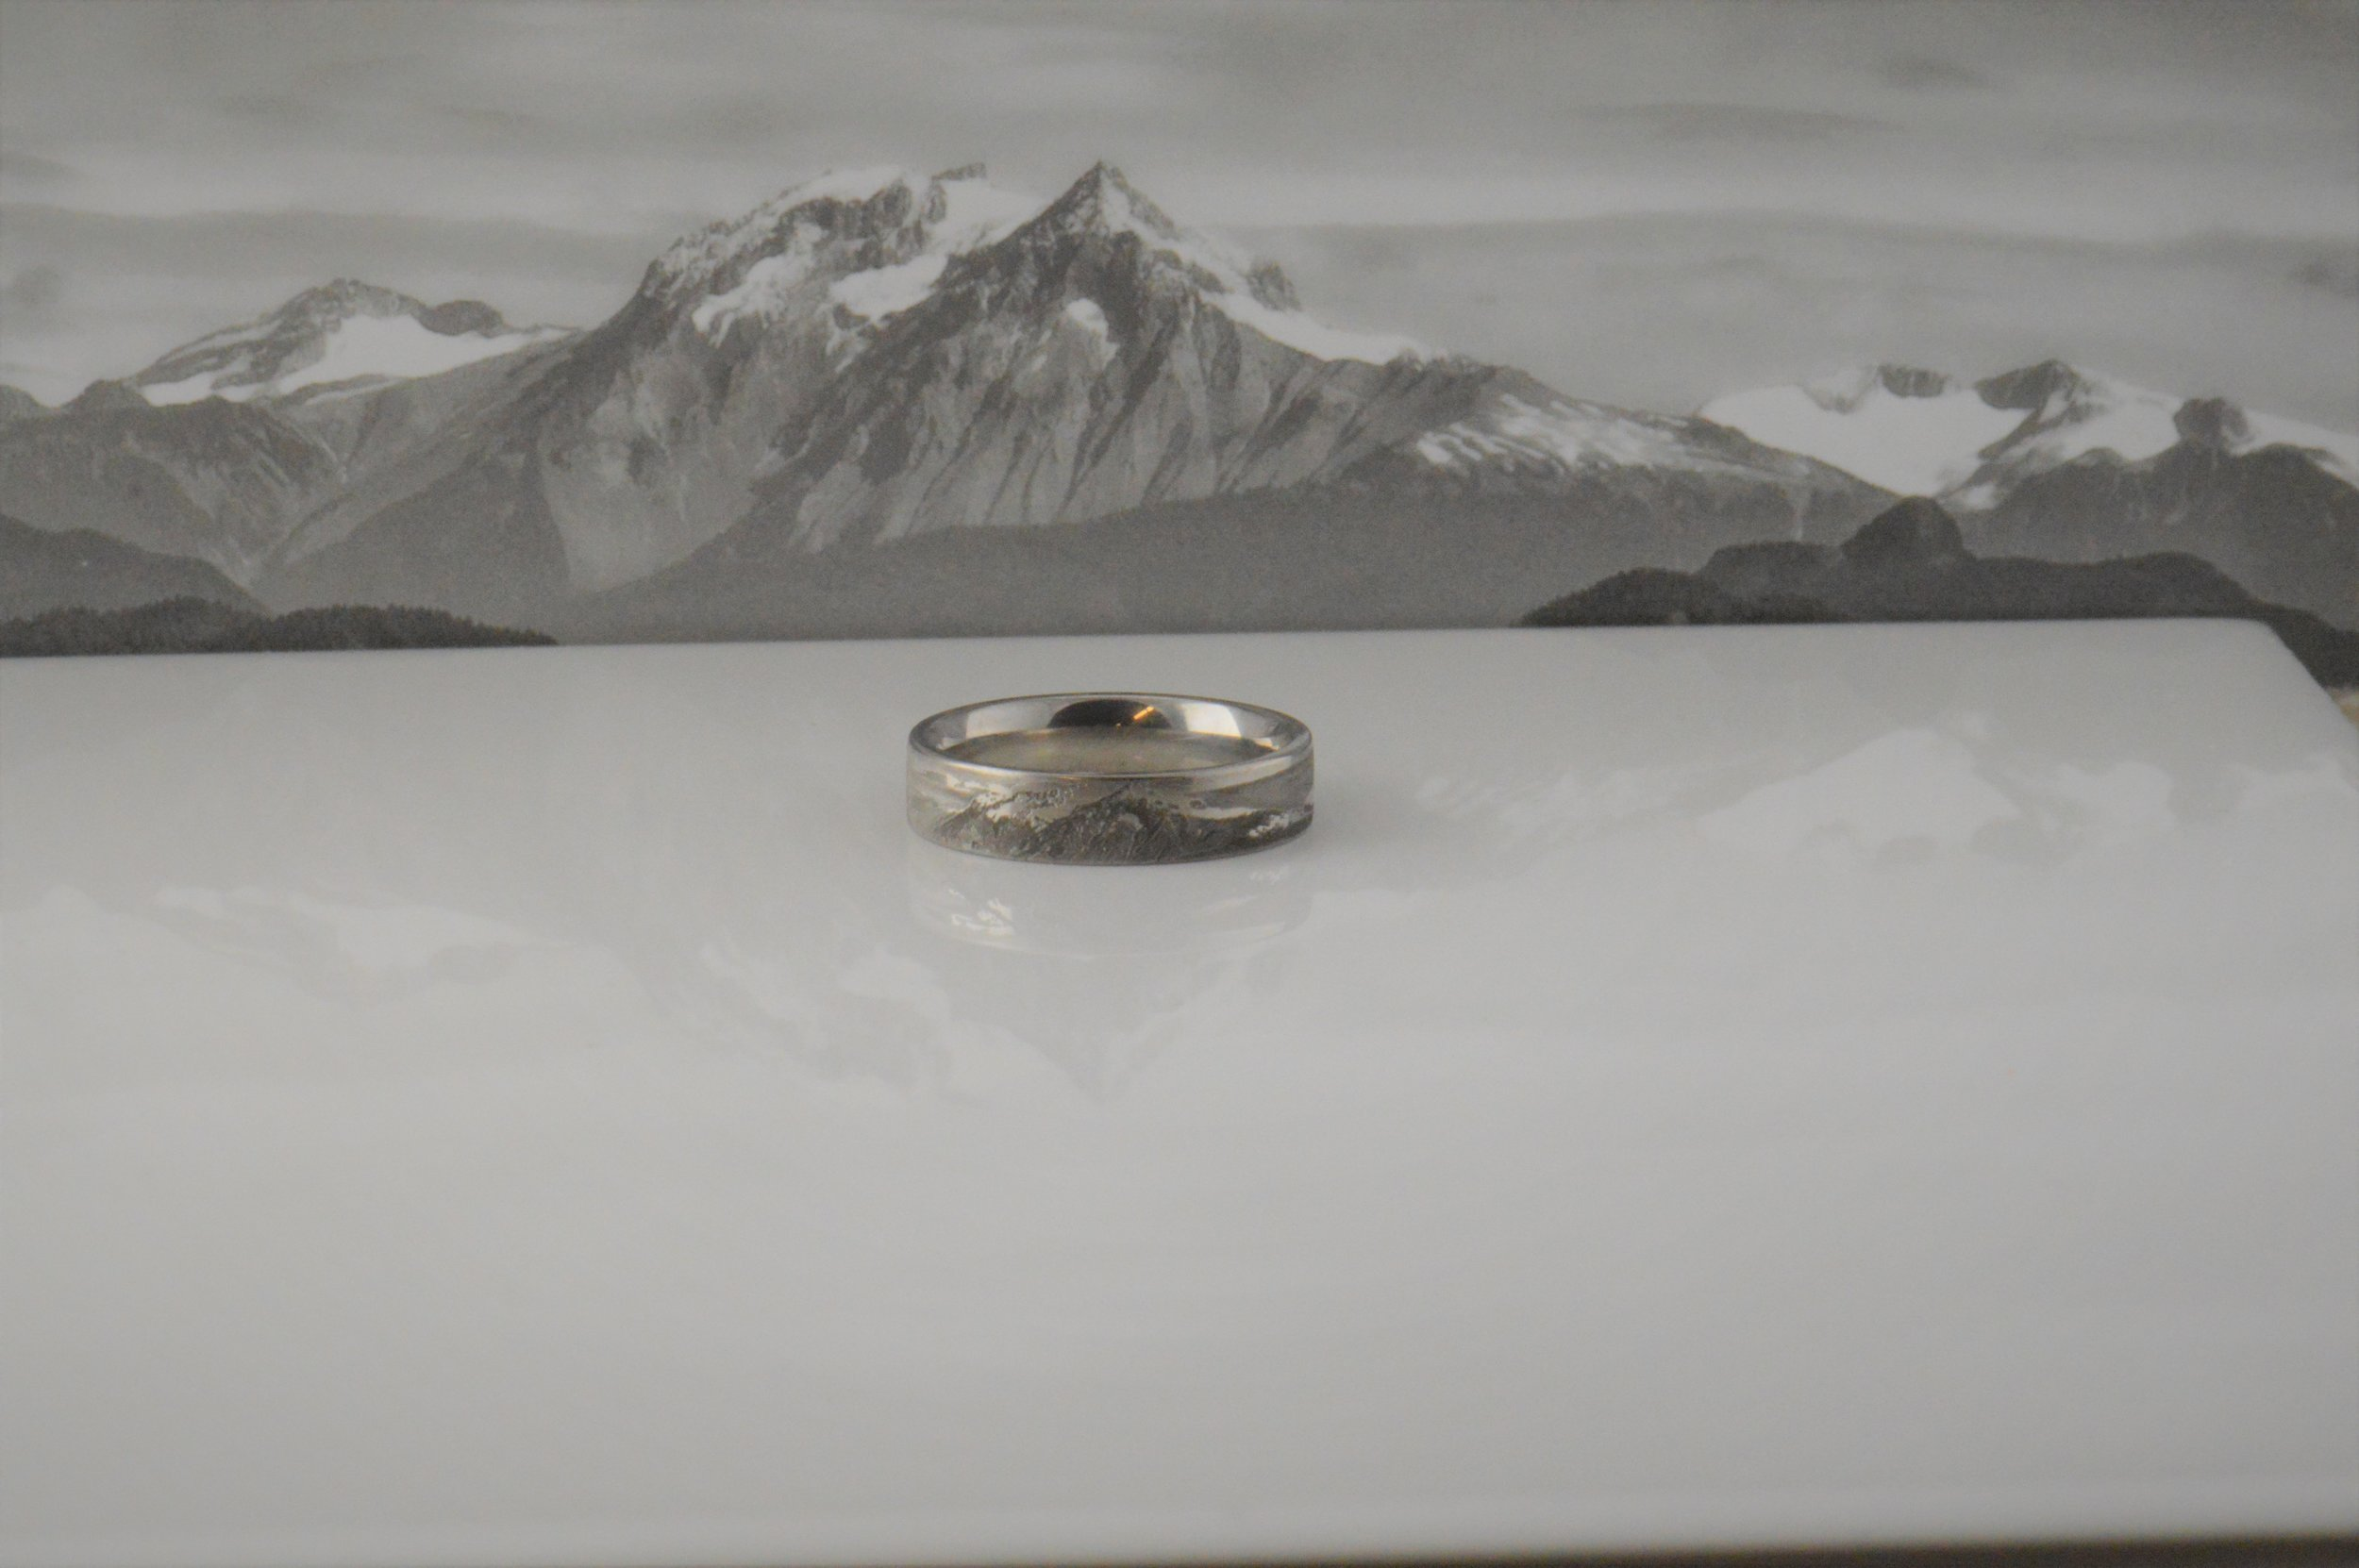 darvier-client-photo-wedding-ring-engraved.JPG